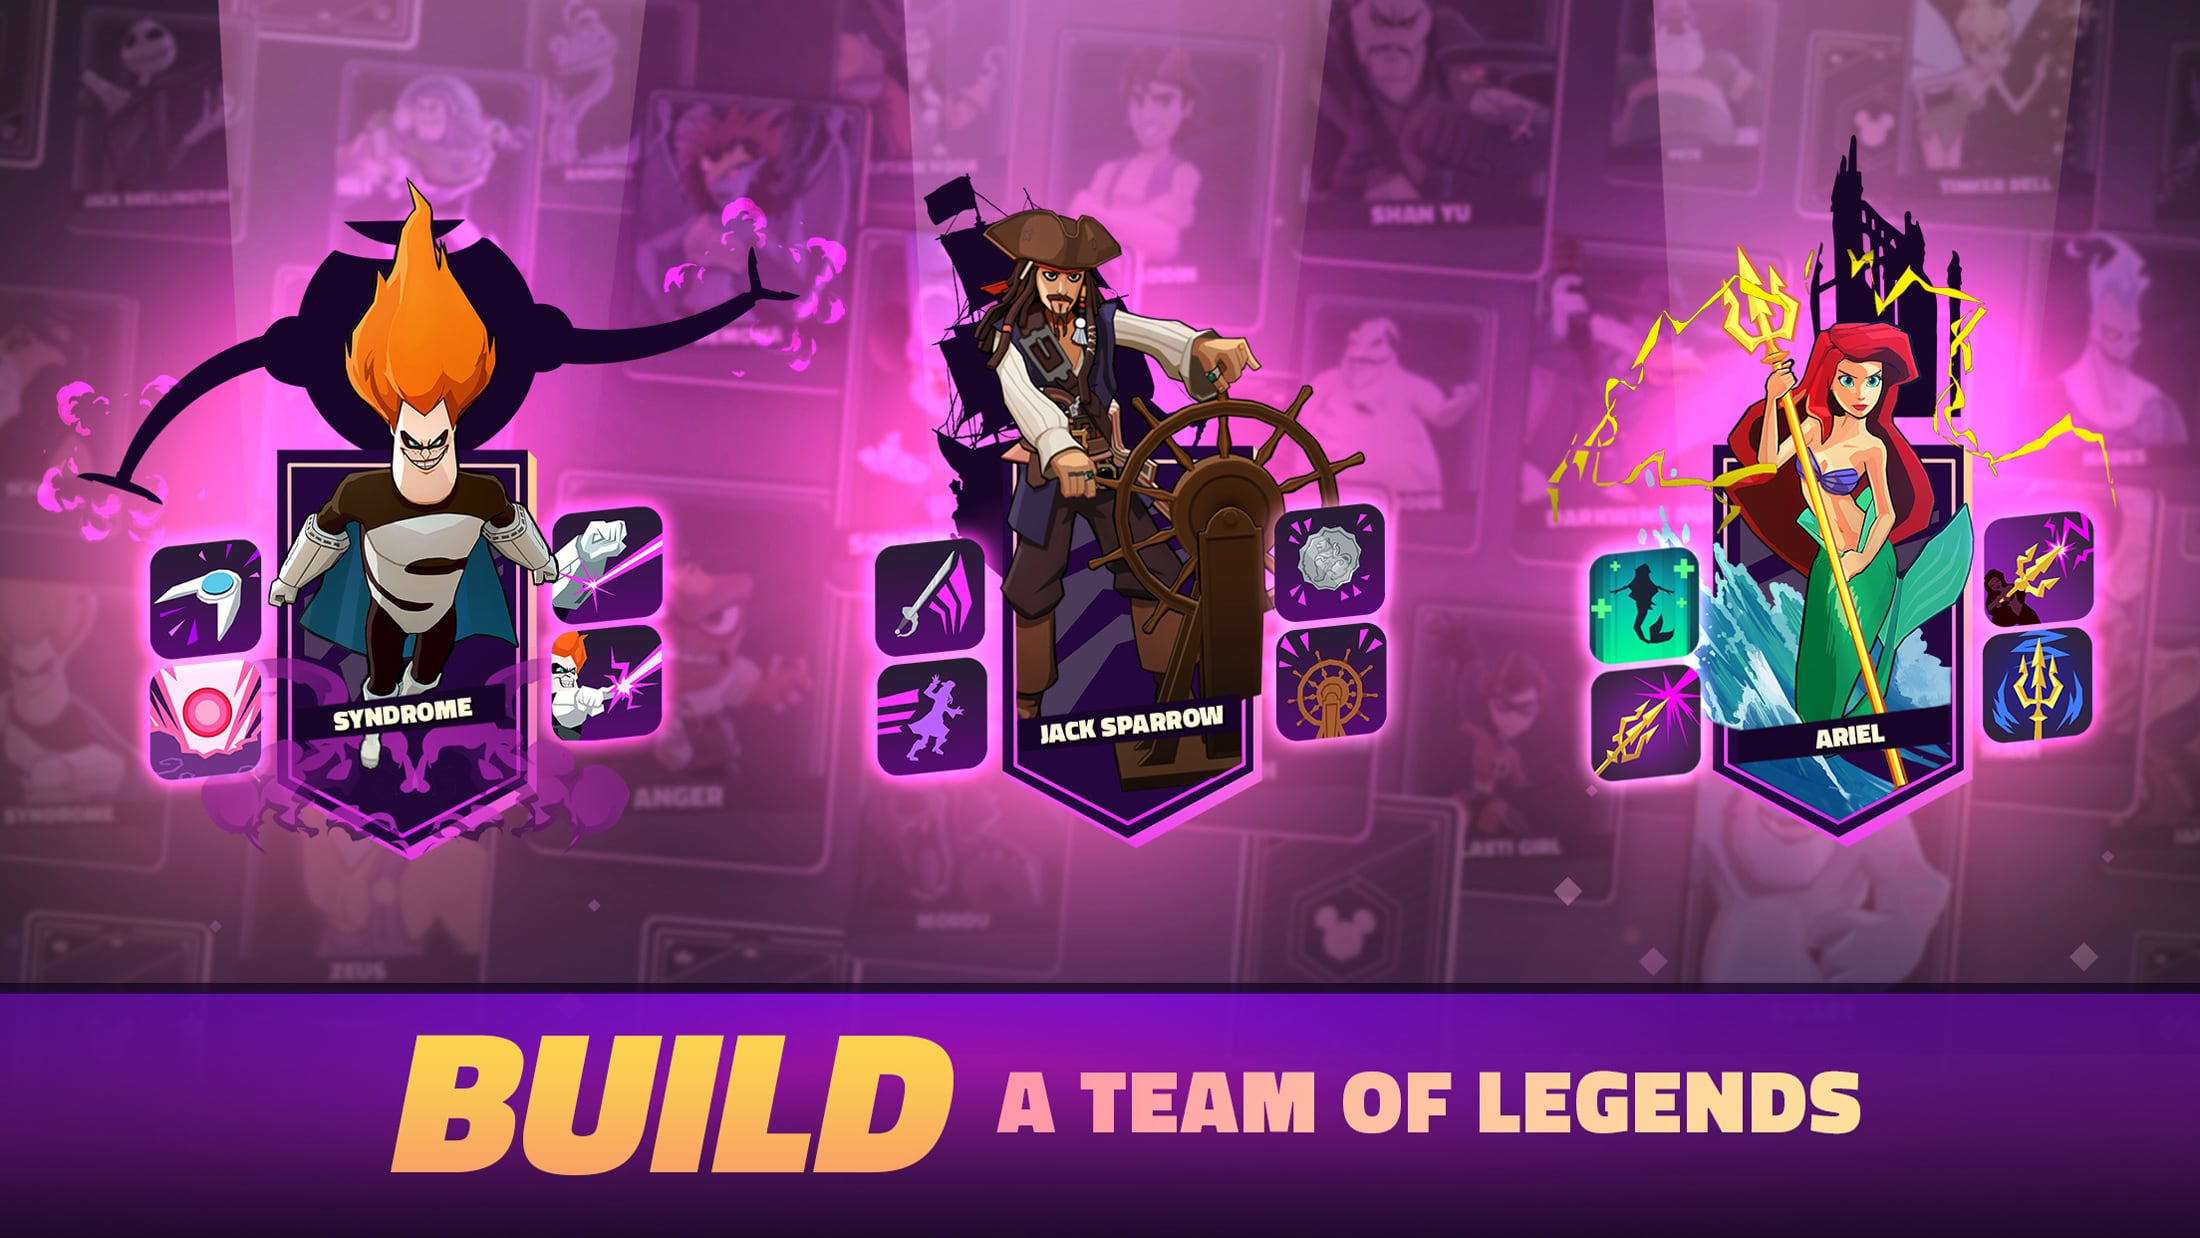 Build a team of legends